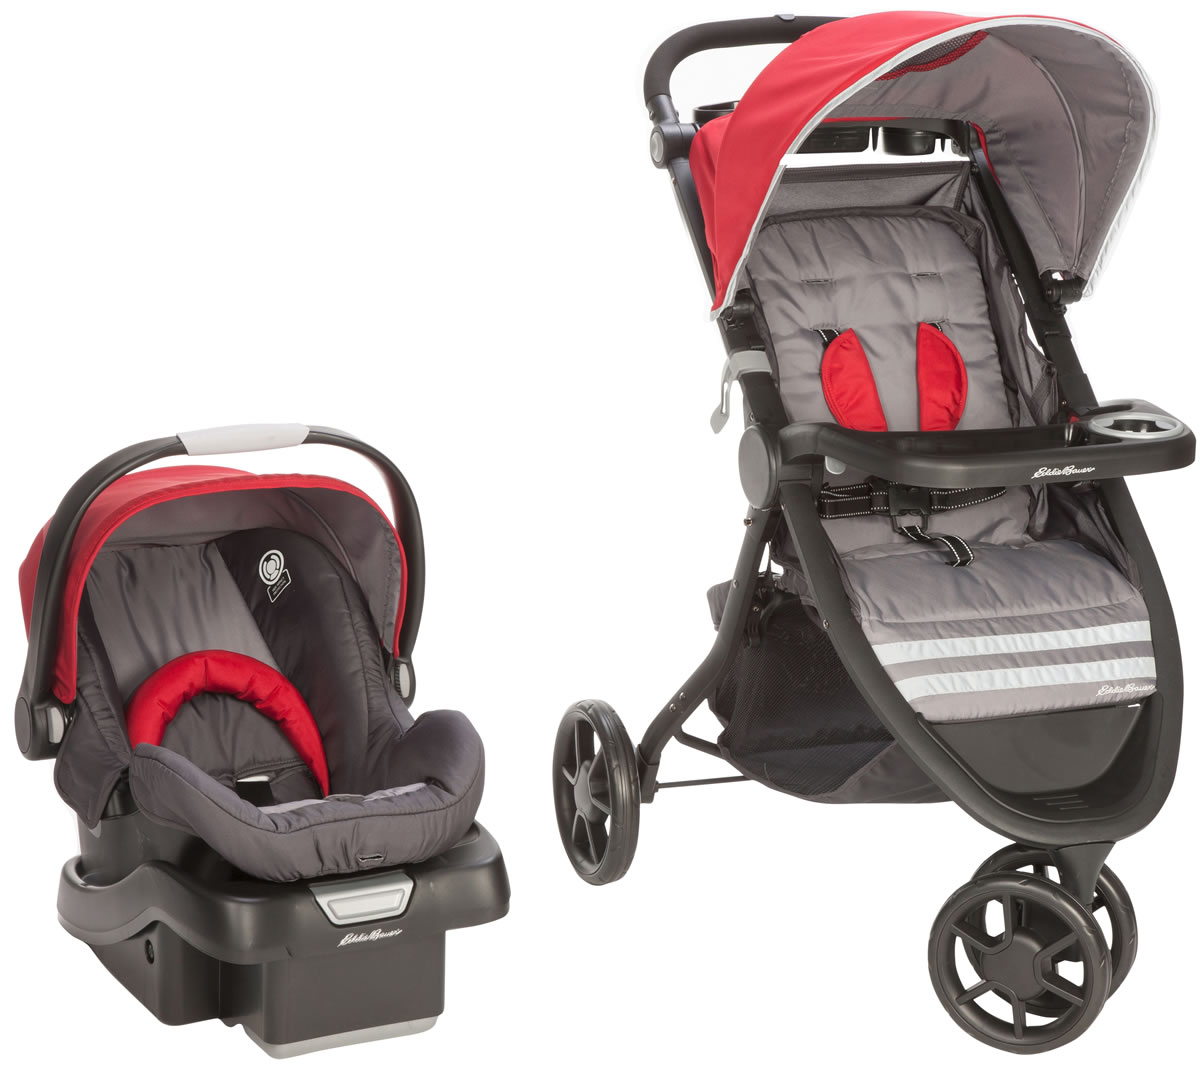 Eddie Bauer Alpine 3 Travel System - Salsa Red